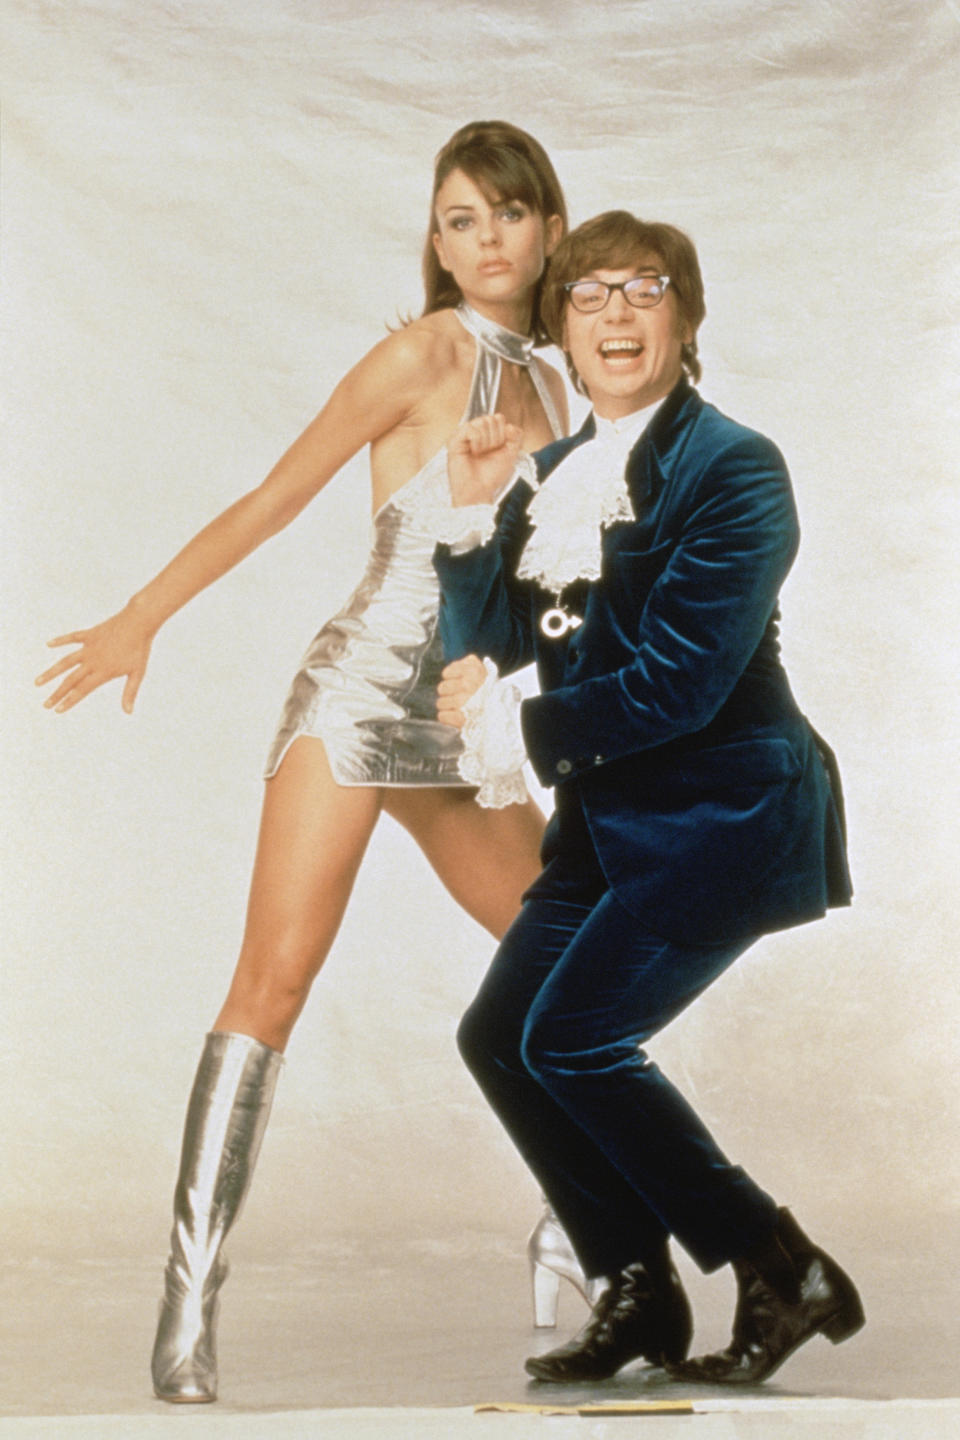 British actress and model Elizabeth Hurley and canadian actor, screenwriter and producer Mike Myers on the set of <Austin Powers: International Man of Mystery>, directed by American Jay Roach.  (Photo by Sunset Boulevard/Corbis via Getty Images)